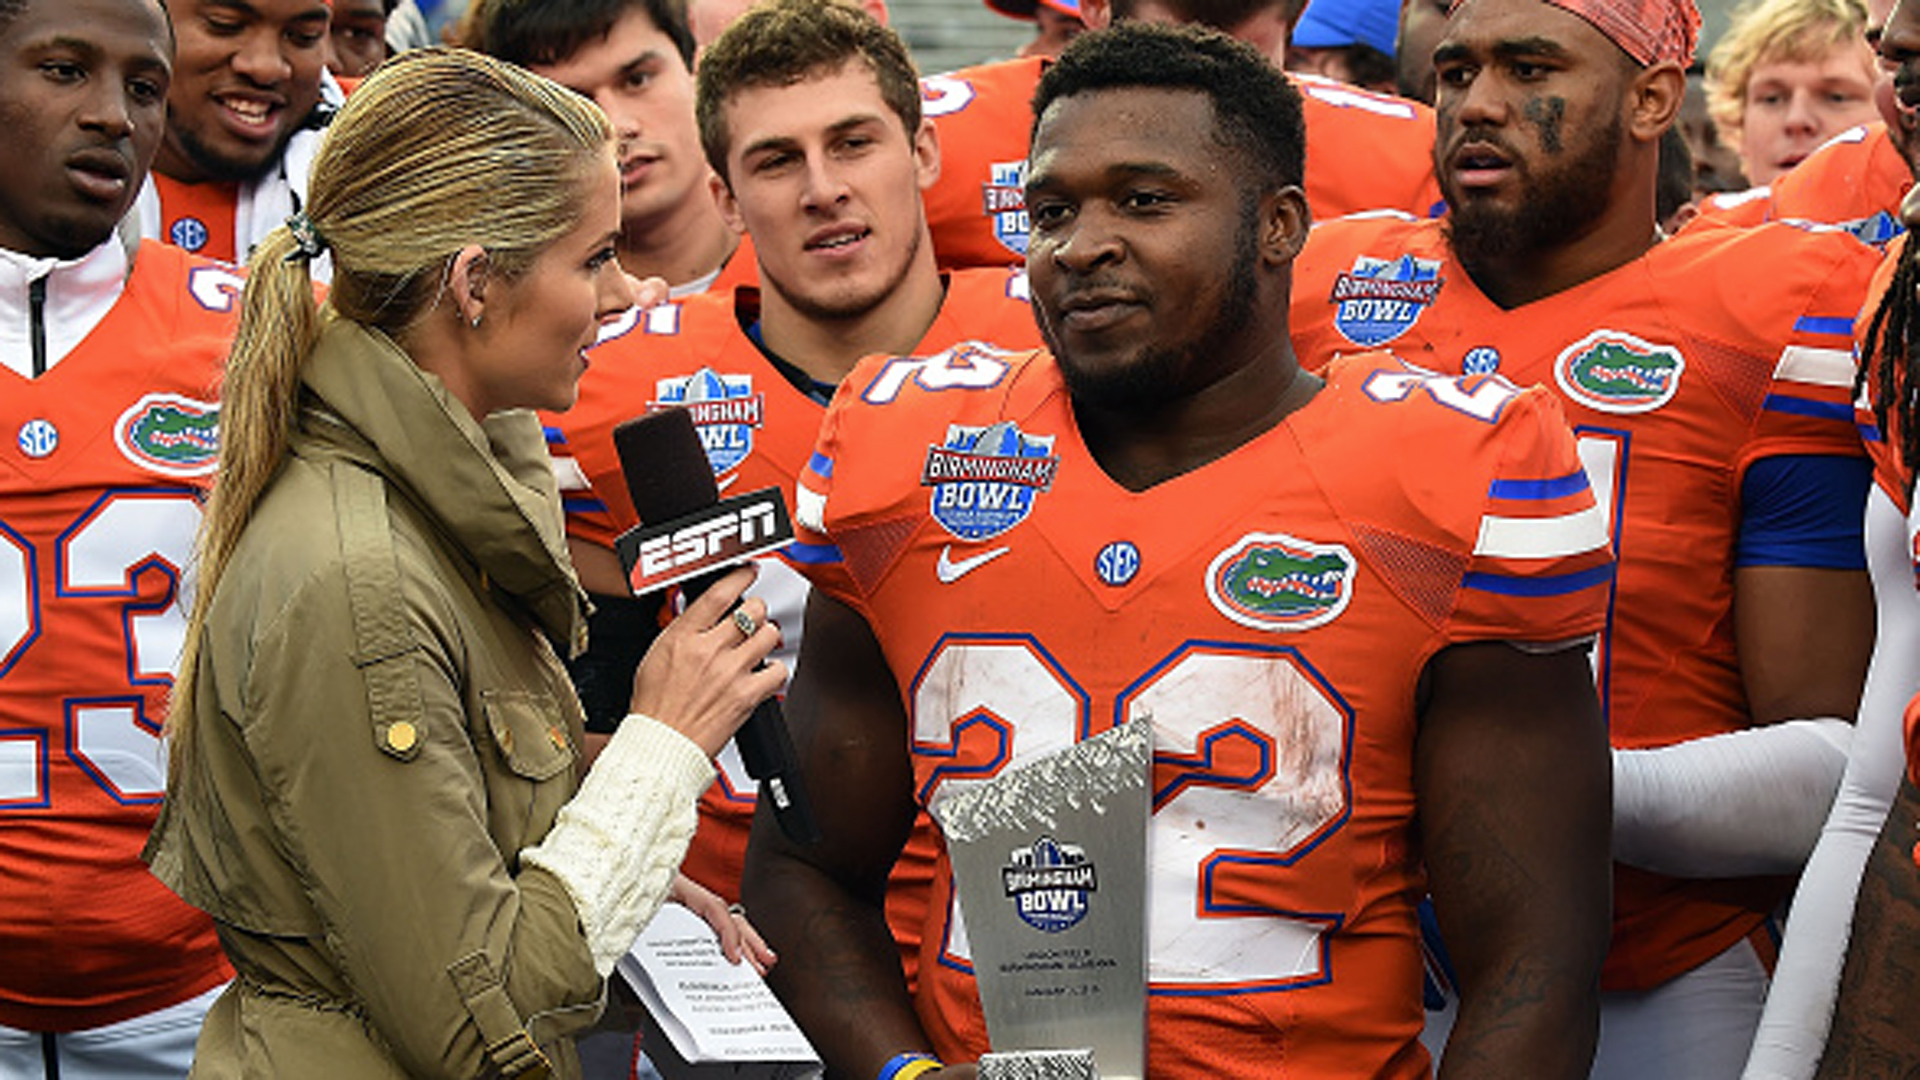 Florida Rb Says Pooping His Pants Was The Best Thing That Could